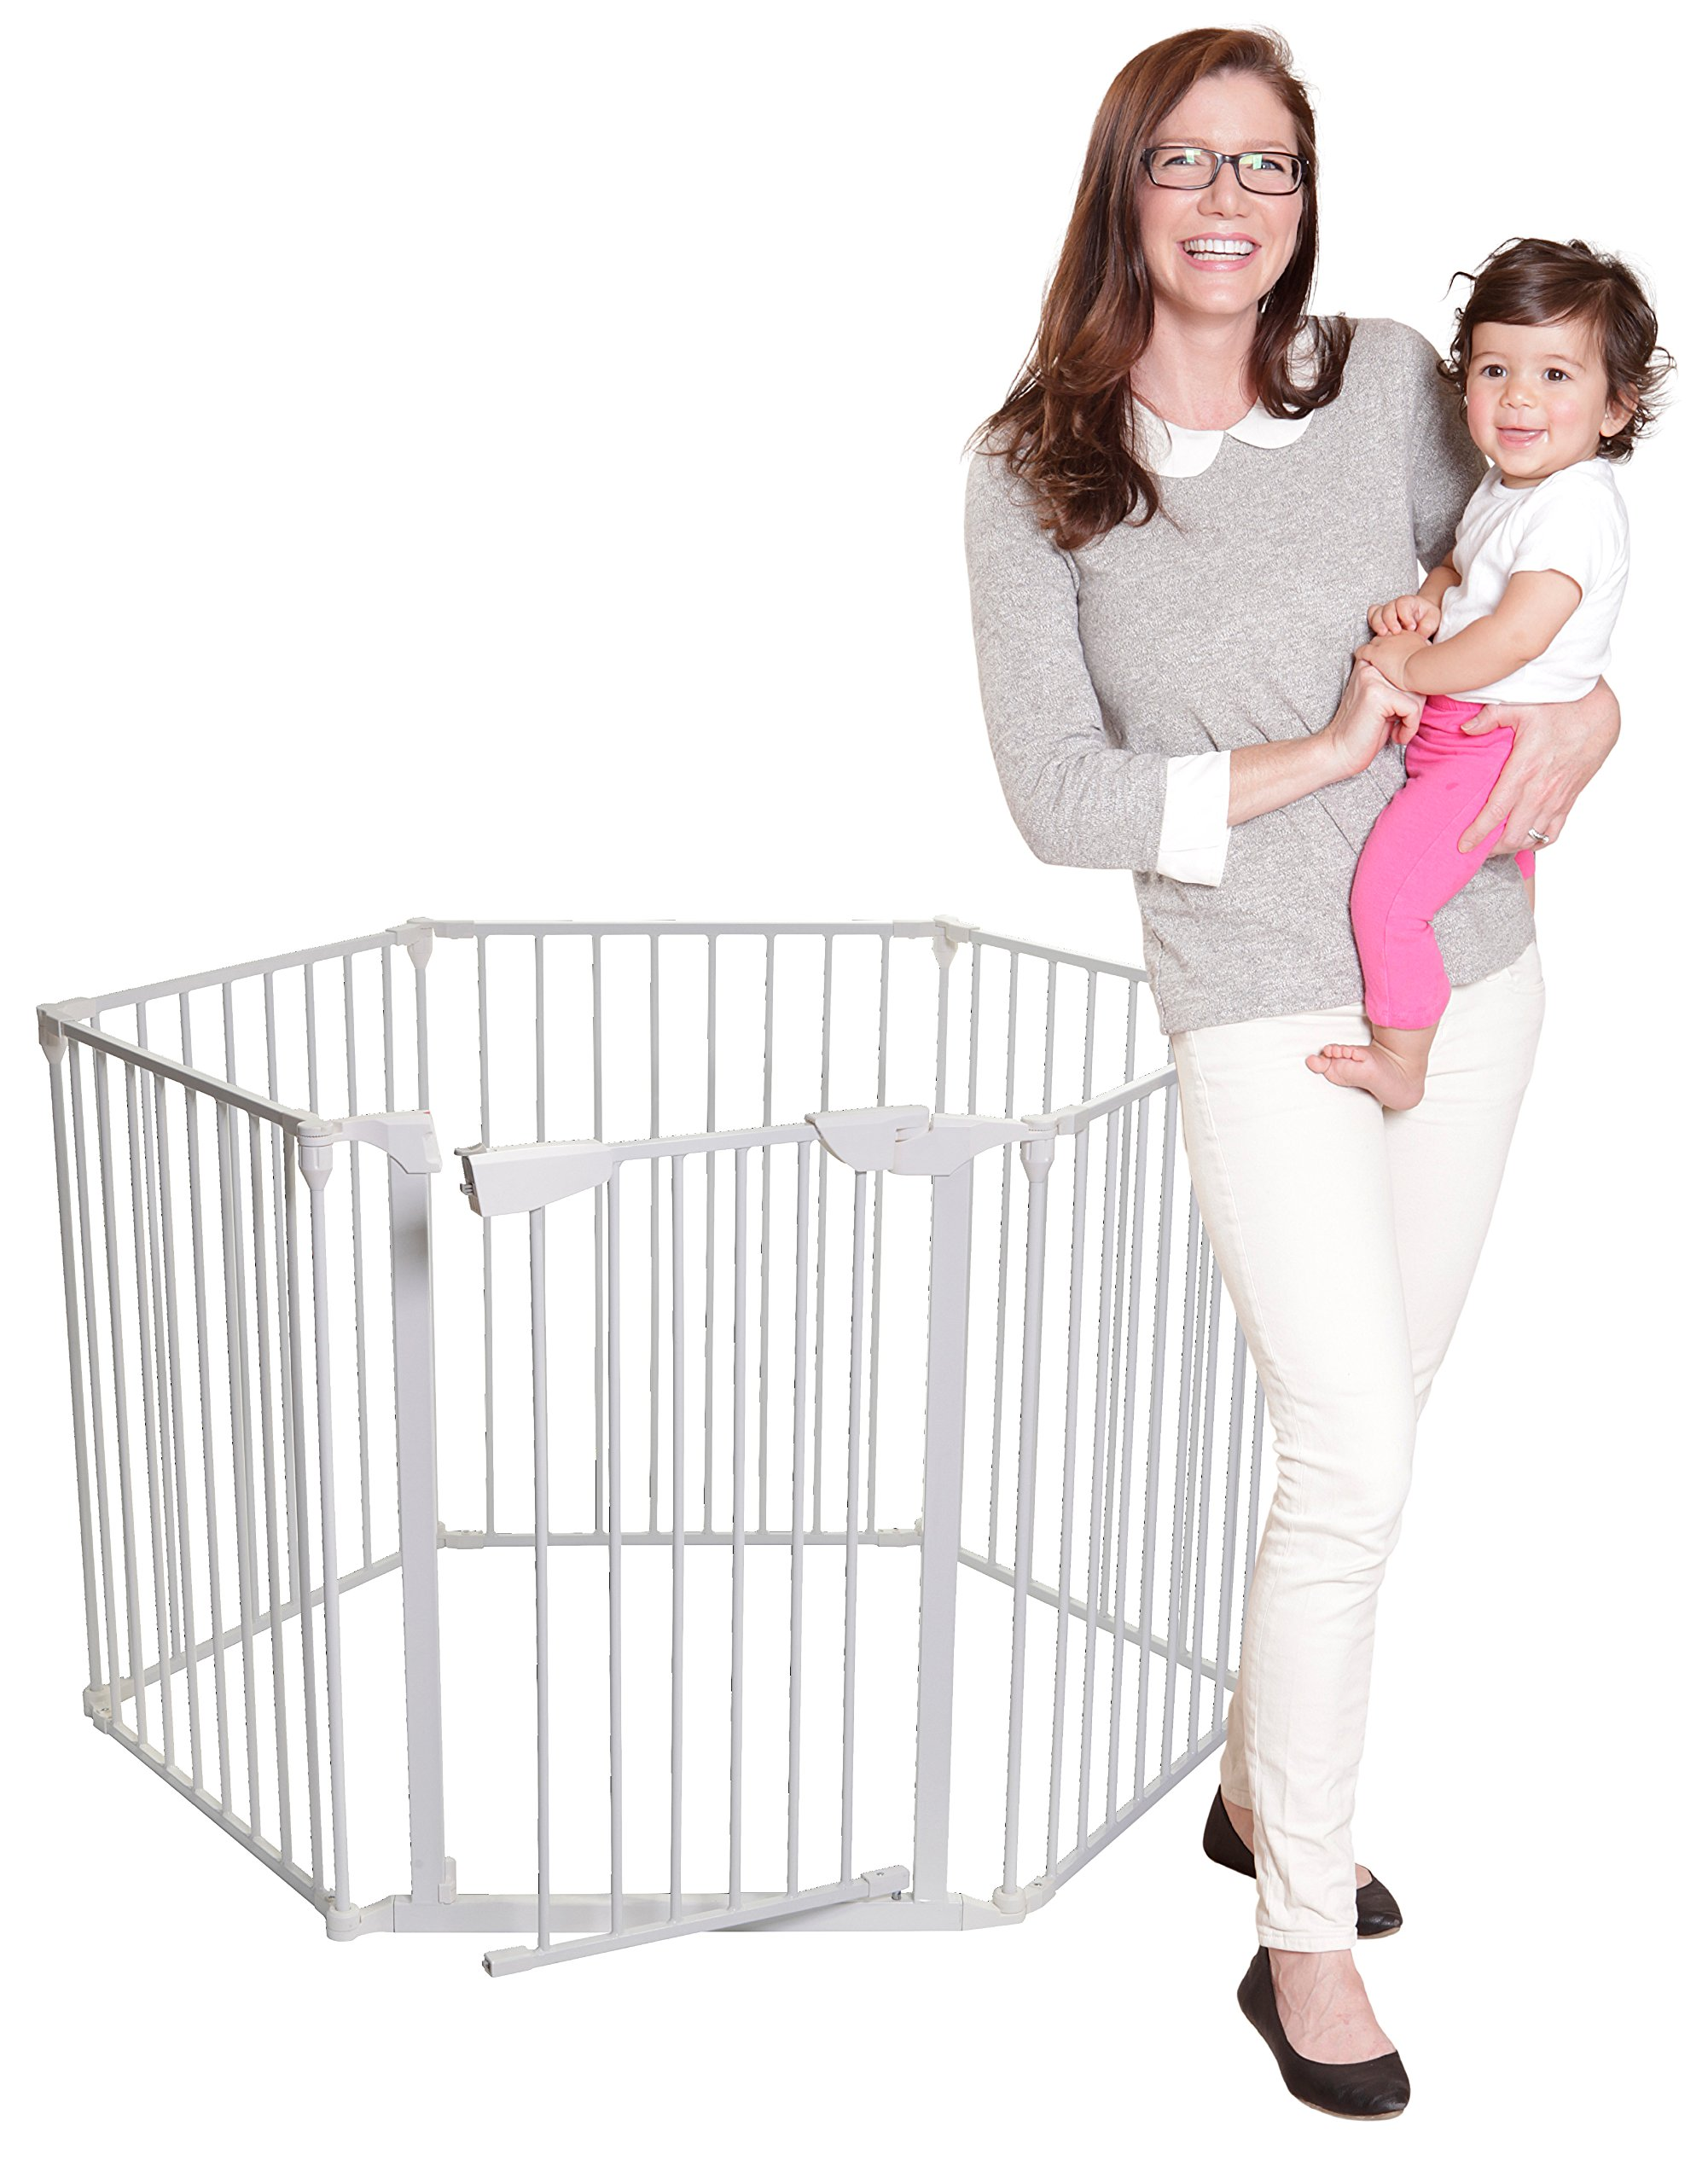 Dreambaby Mayfair Converta 3-in-1 Metal Play-Pen (85.5 - 375 cm) Dreambaby 6 modular panels including convient walk-through Gate 3-in-1 (play-pen, fireplace barrier, wide barrier Gate) Smart stey-open feature and optional one way stopper 2